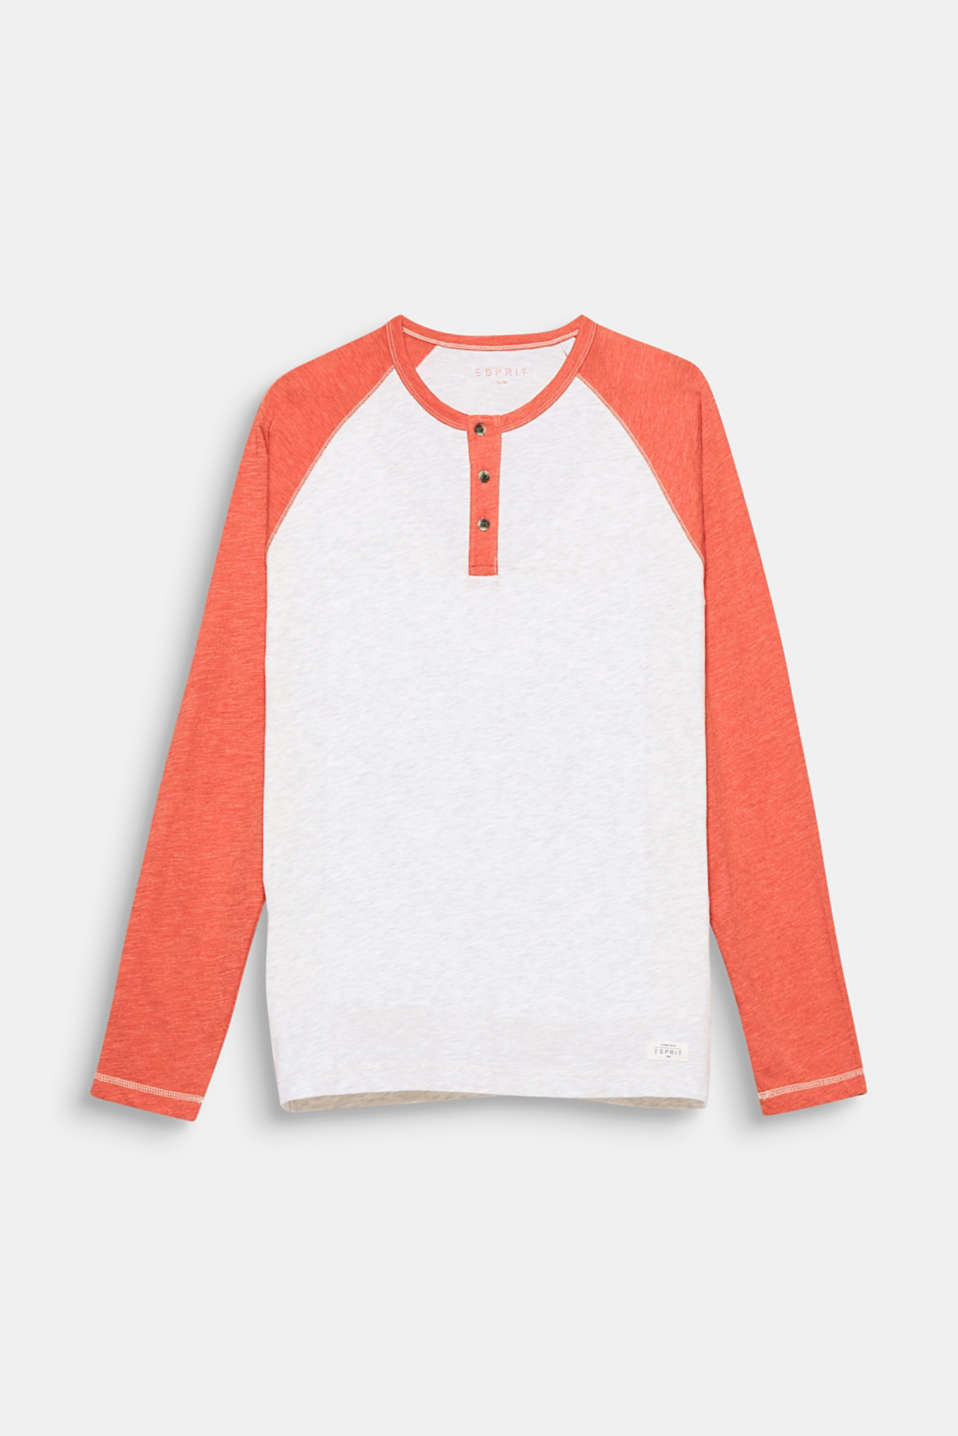 The contrasting colour raglan sleeves give this long sleeve top a sporty vibe.